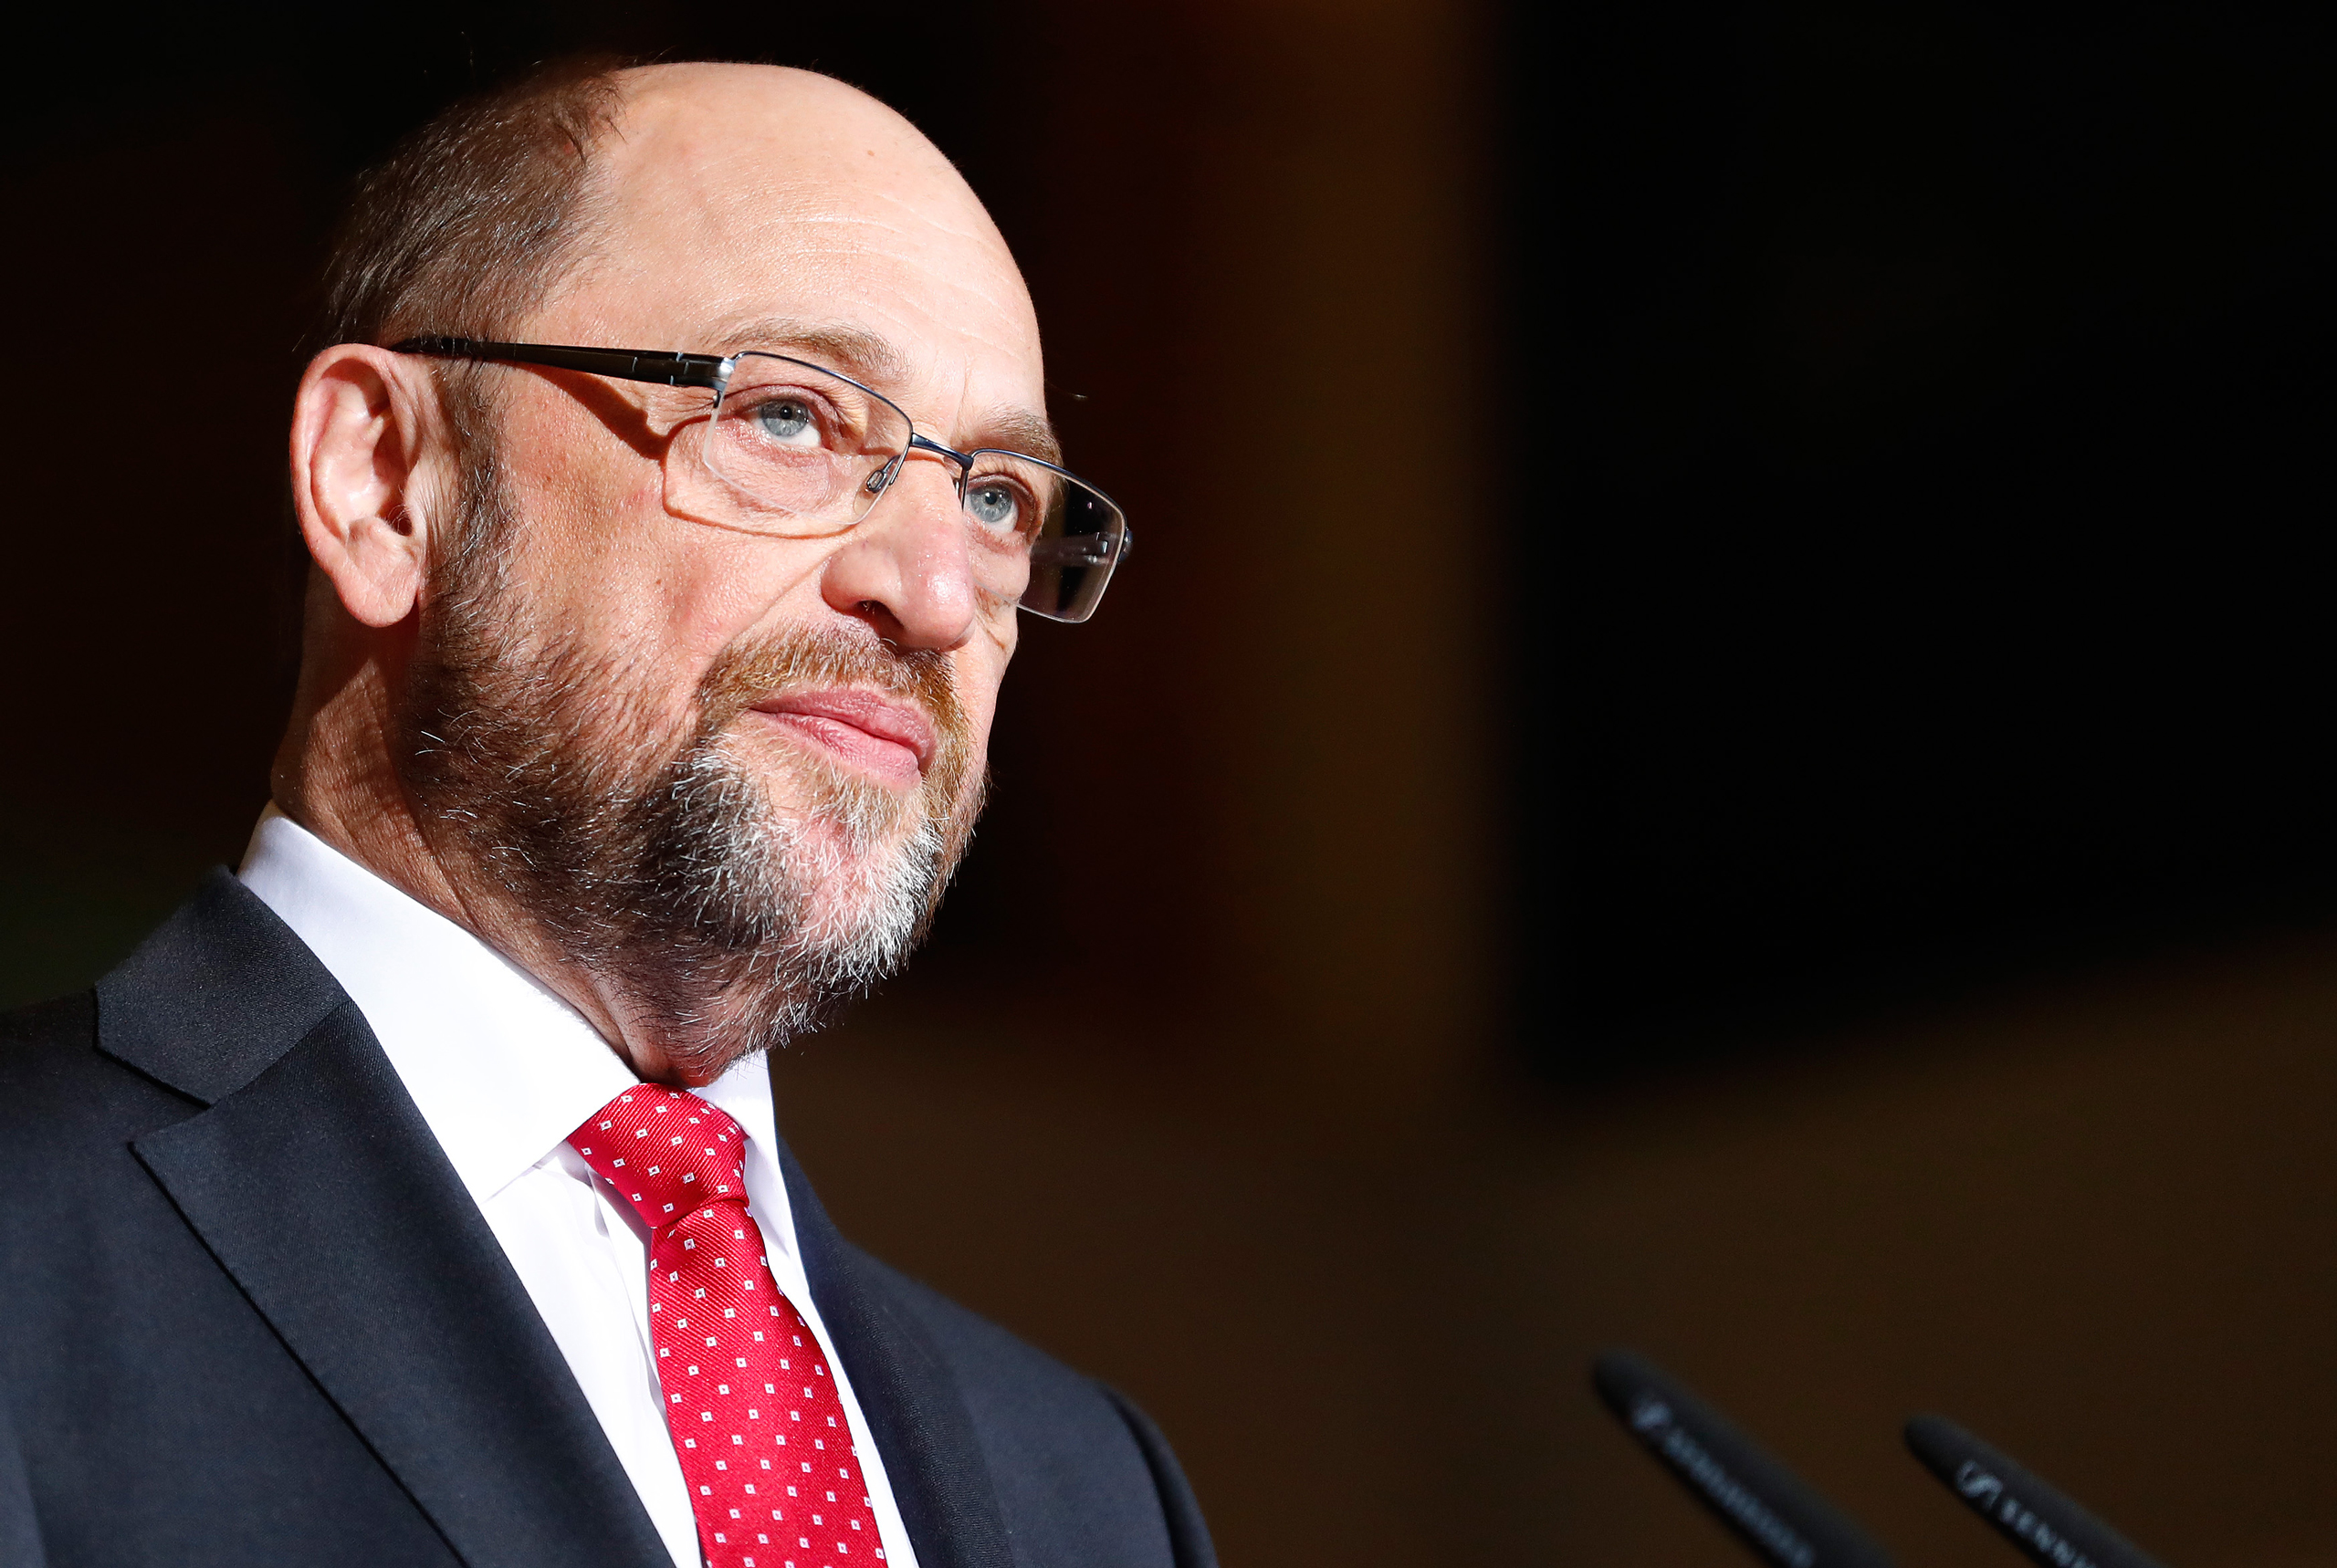 Martin Schulz, former president of the European Parliament, looks on during a news conference in Berlin on Jan. 24, 2017.